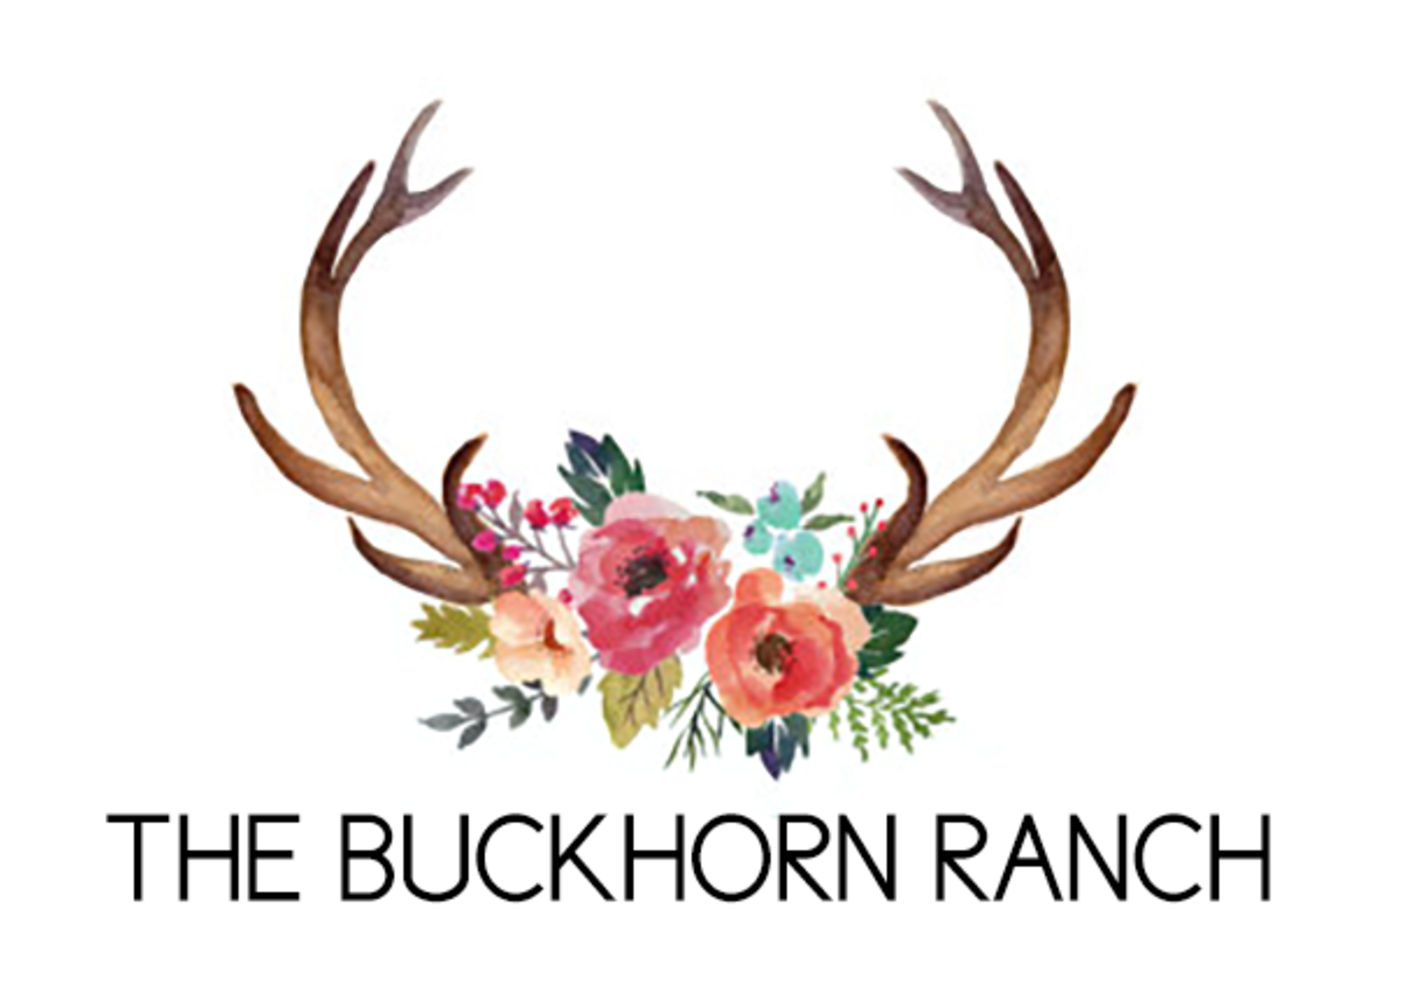 The Buckhorn Ranch